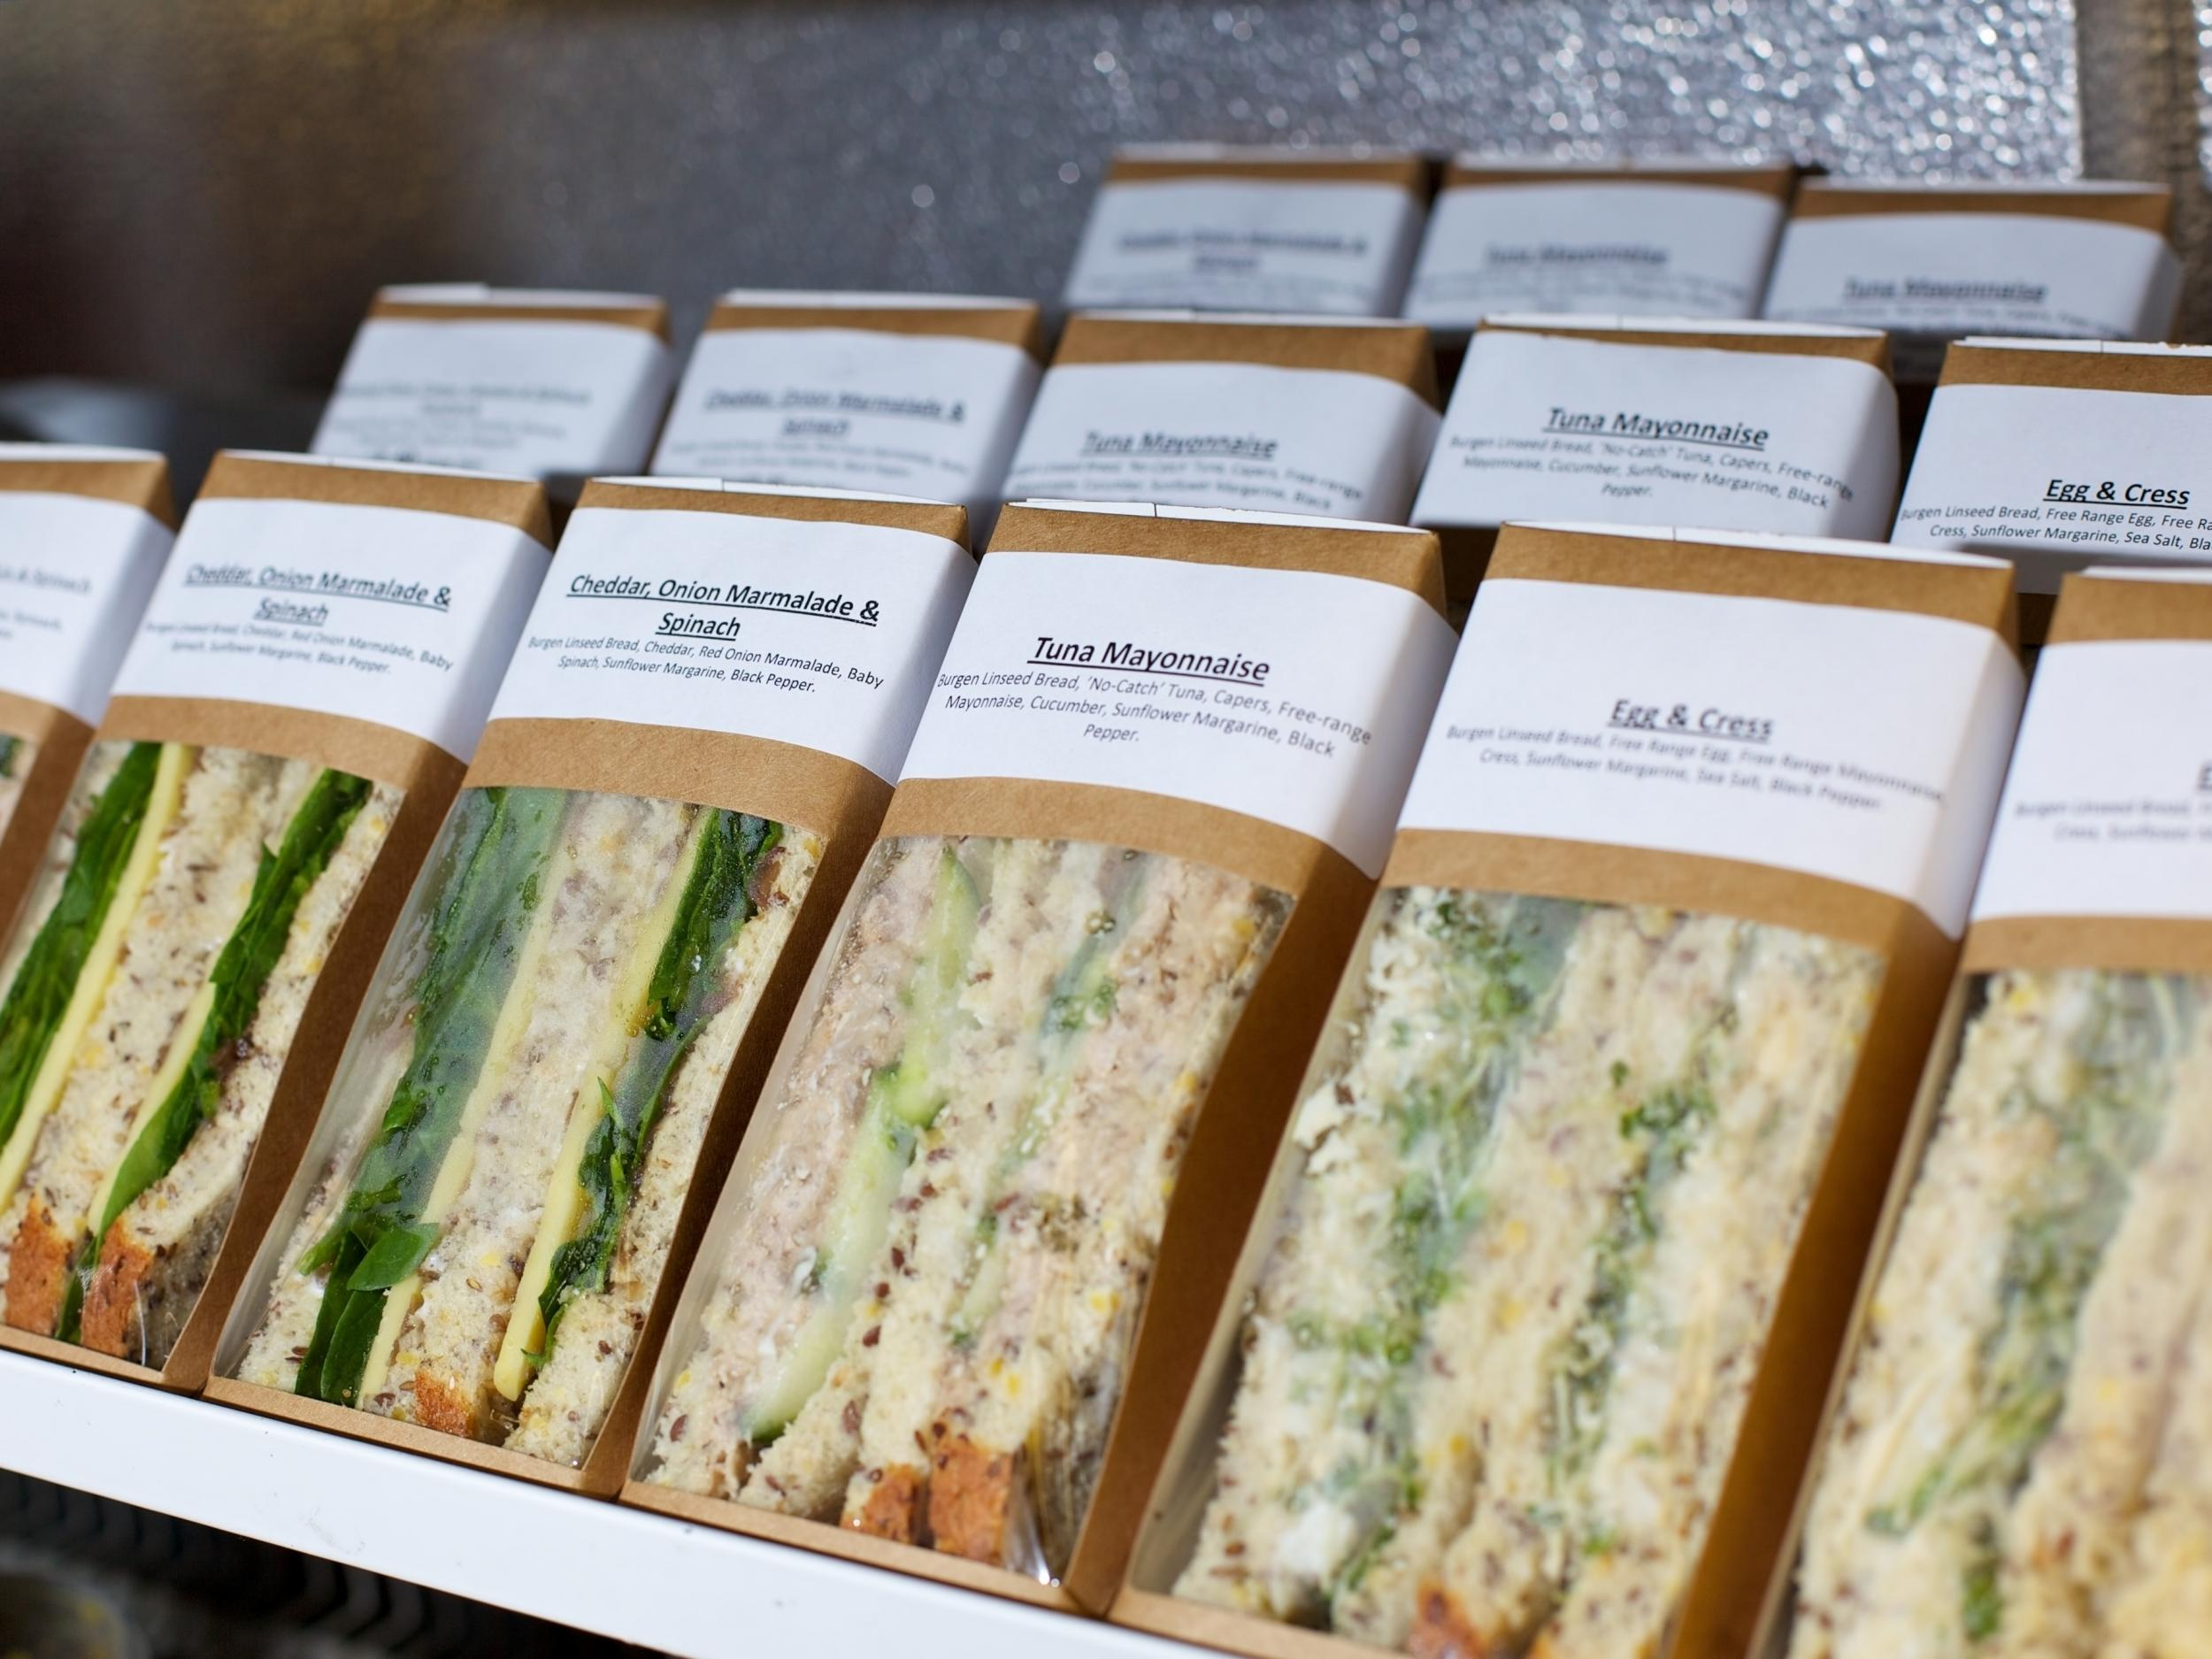 Climate change Sandwiches eaten in UK have same environmental